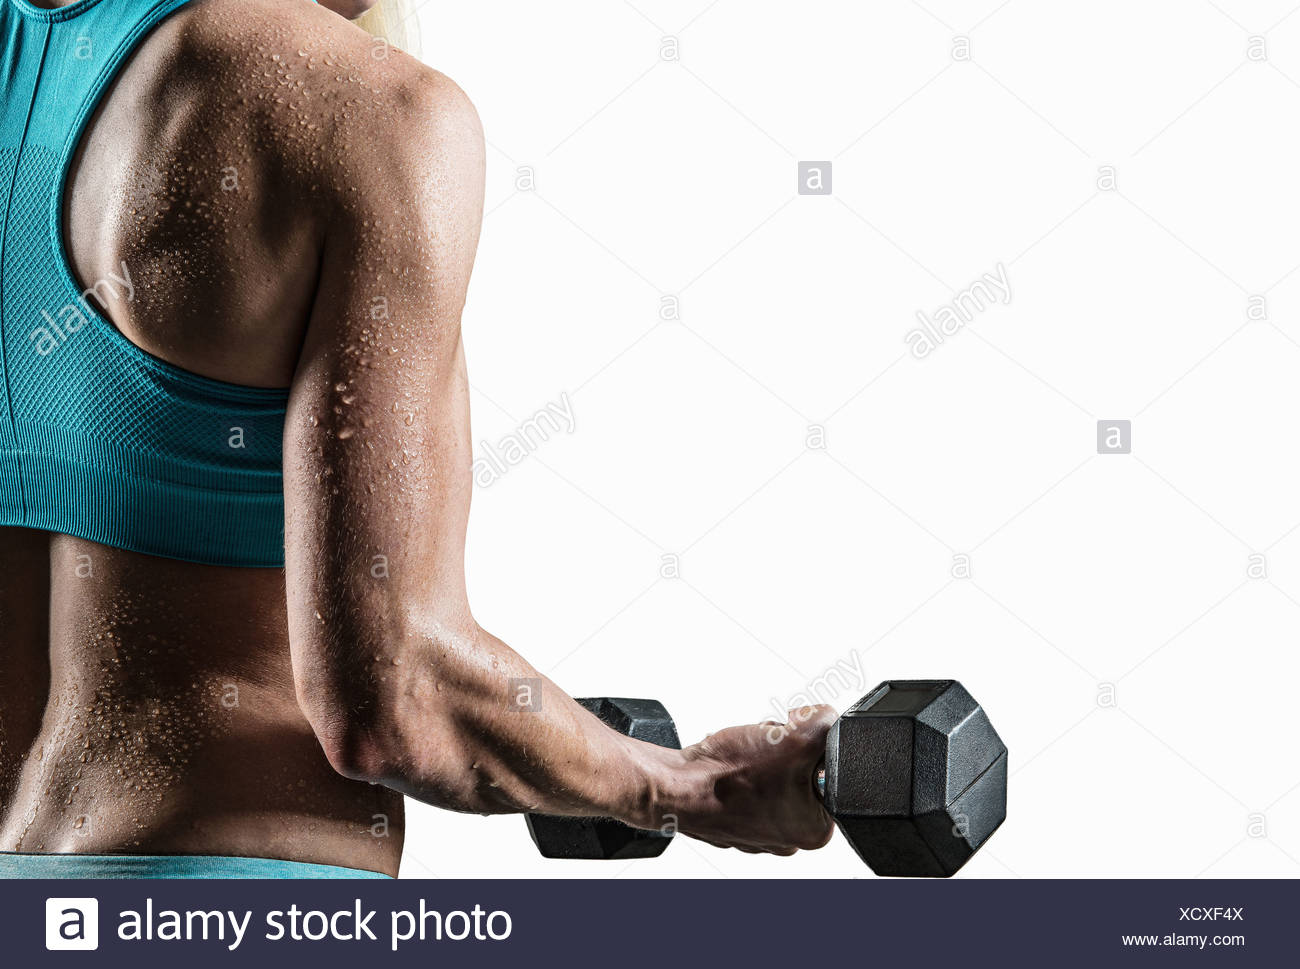 Jeune femme effectuant des biceps, Close up Photo Stock